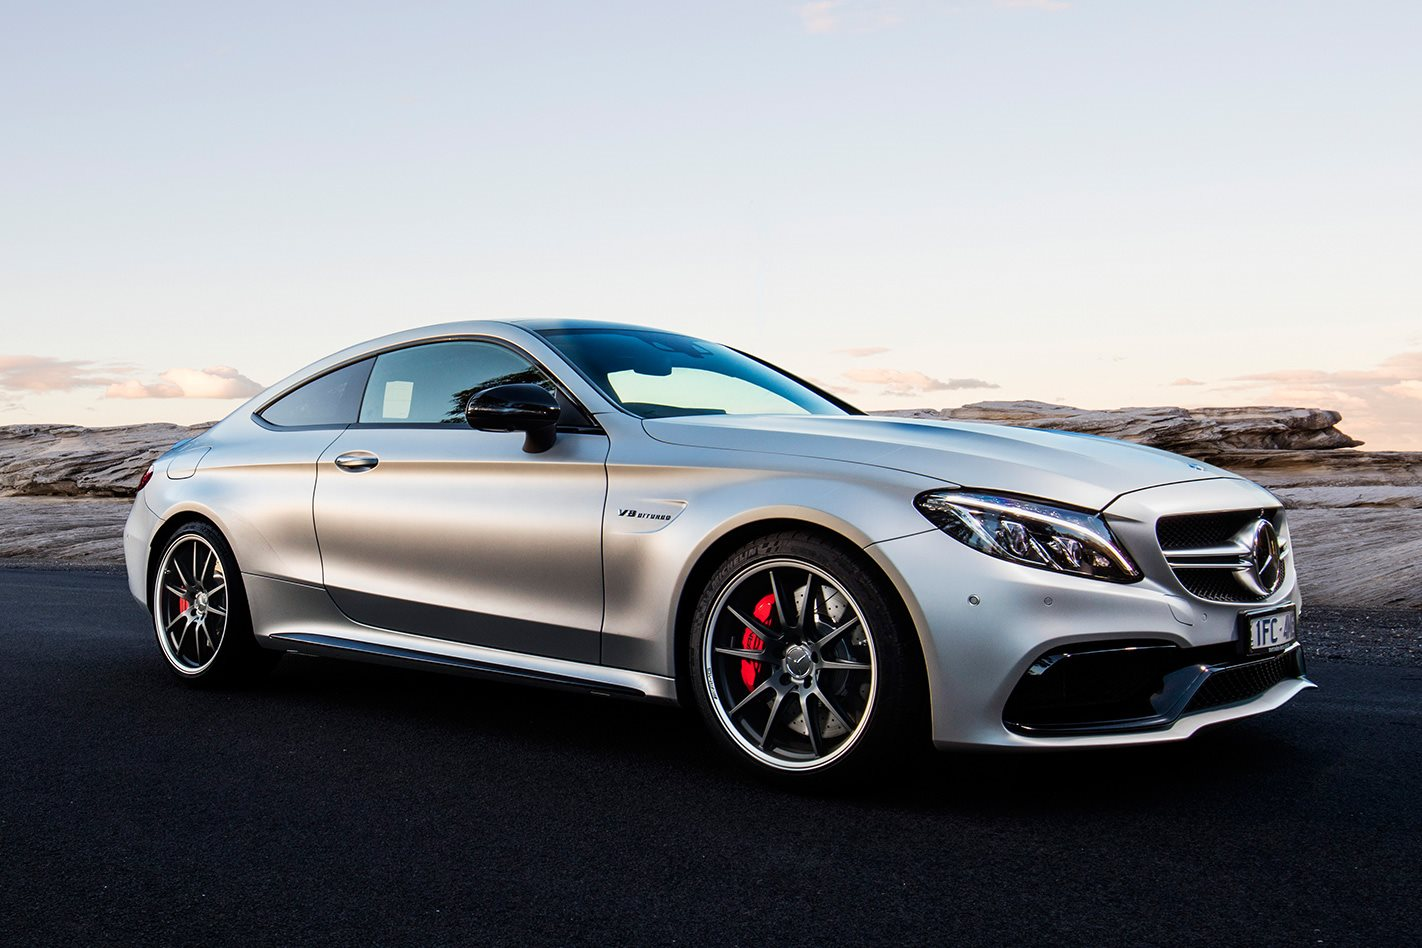 2016 mercedes amg c63 s coupe quick review for Mercedes benz c63 amg coupe 2016